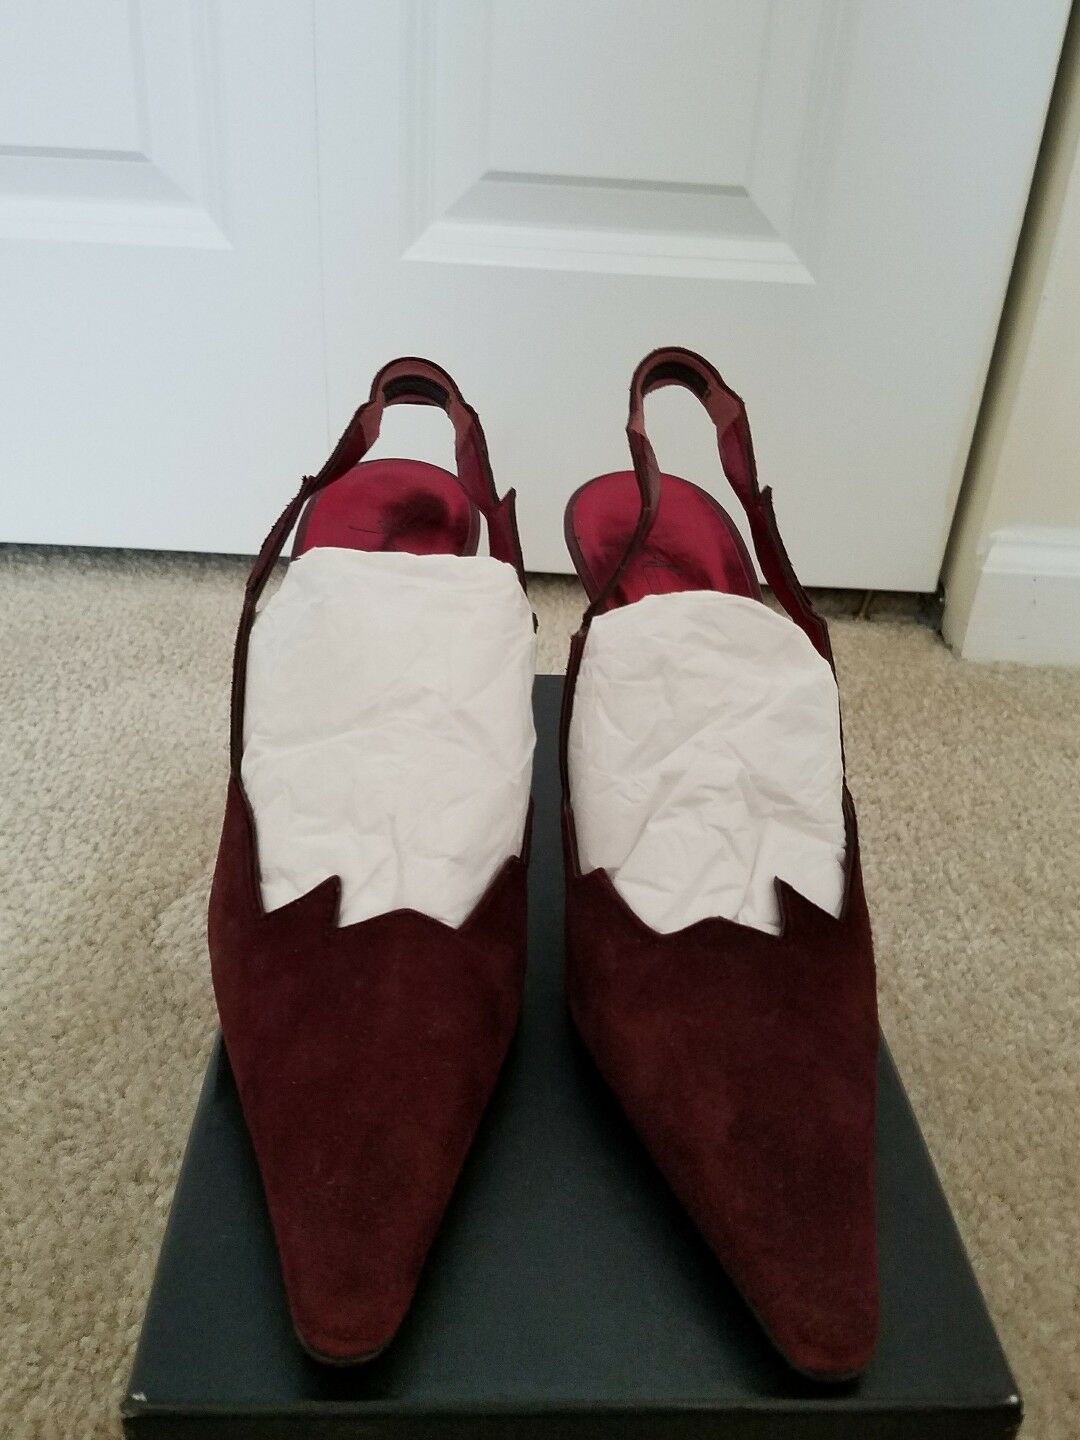 Giuseppe Zanotti VICINI Burgundy Suede Leather Sling Back Pumps IT38 US7.5